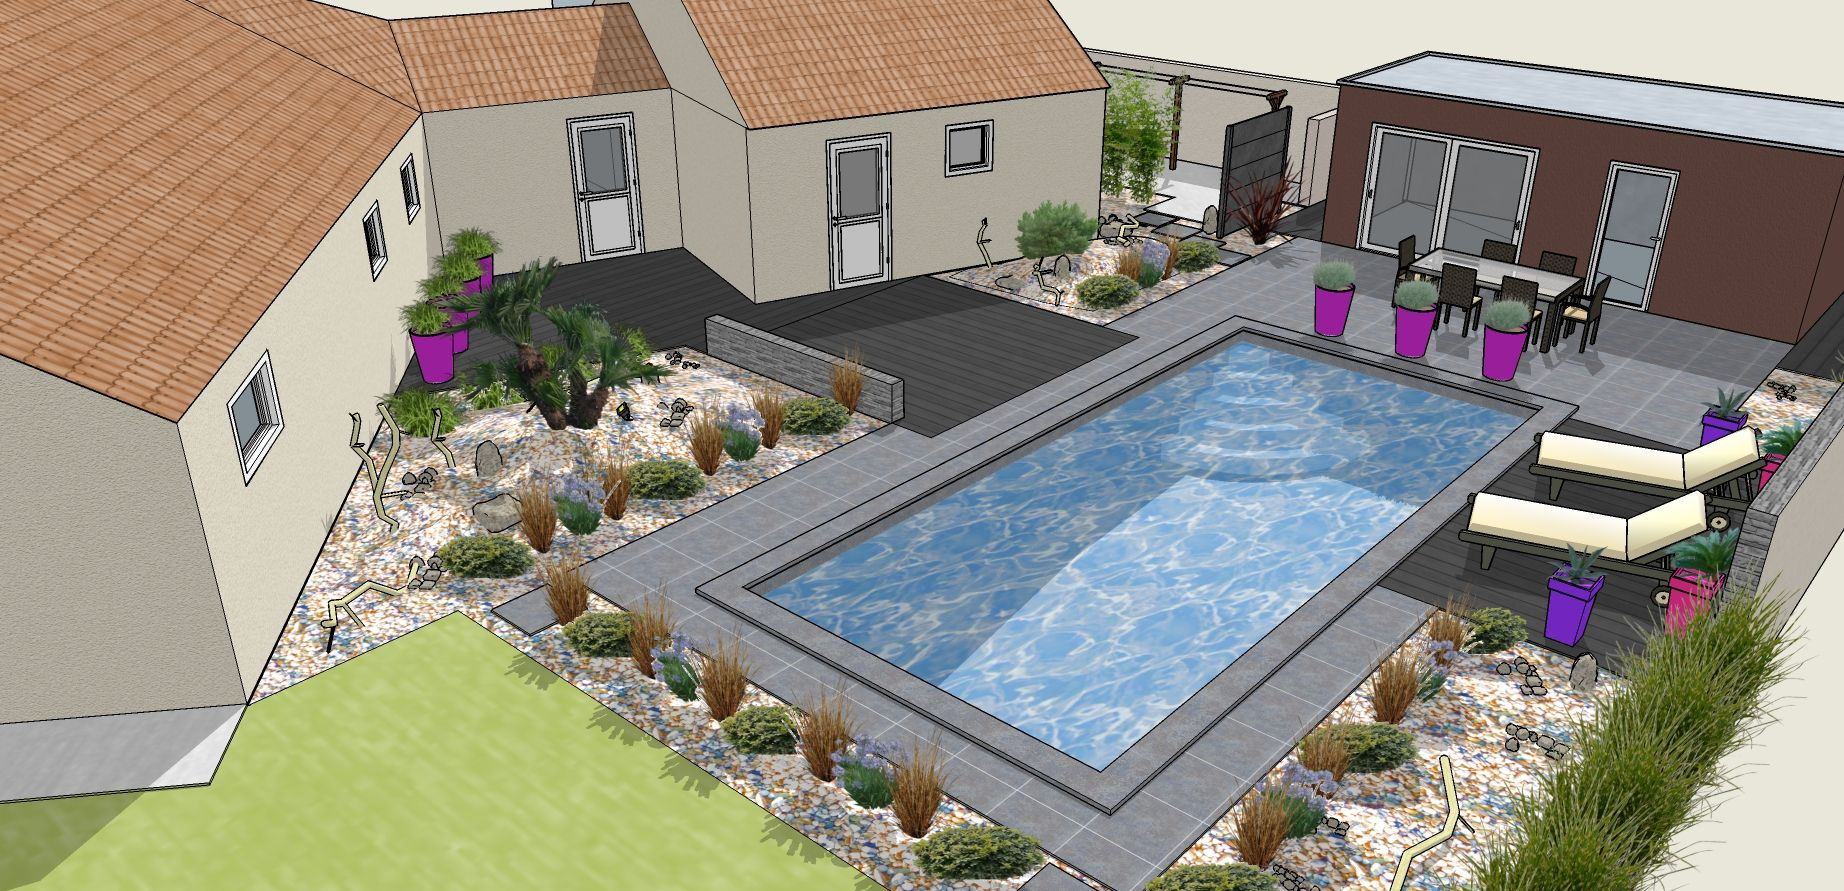 Am nagement paysager piscine creus e contemporain for Amenagement jardin contemporain